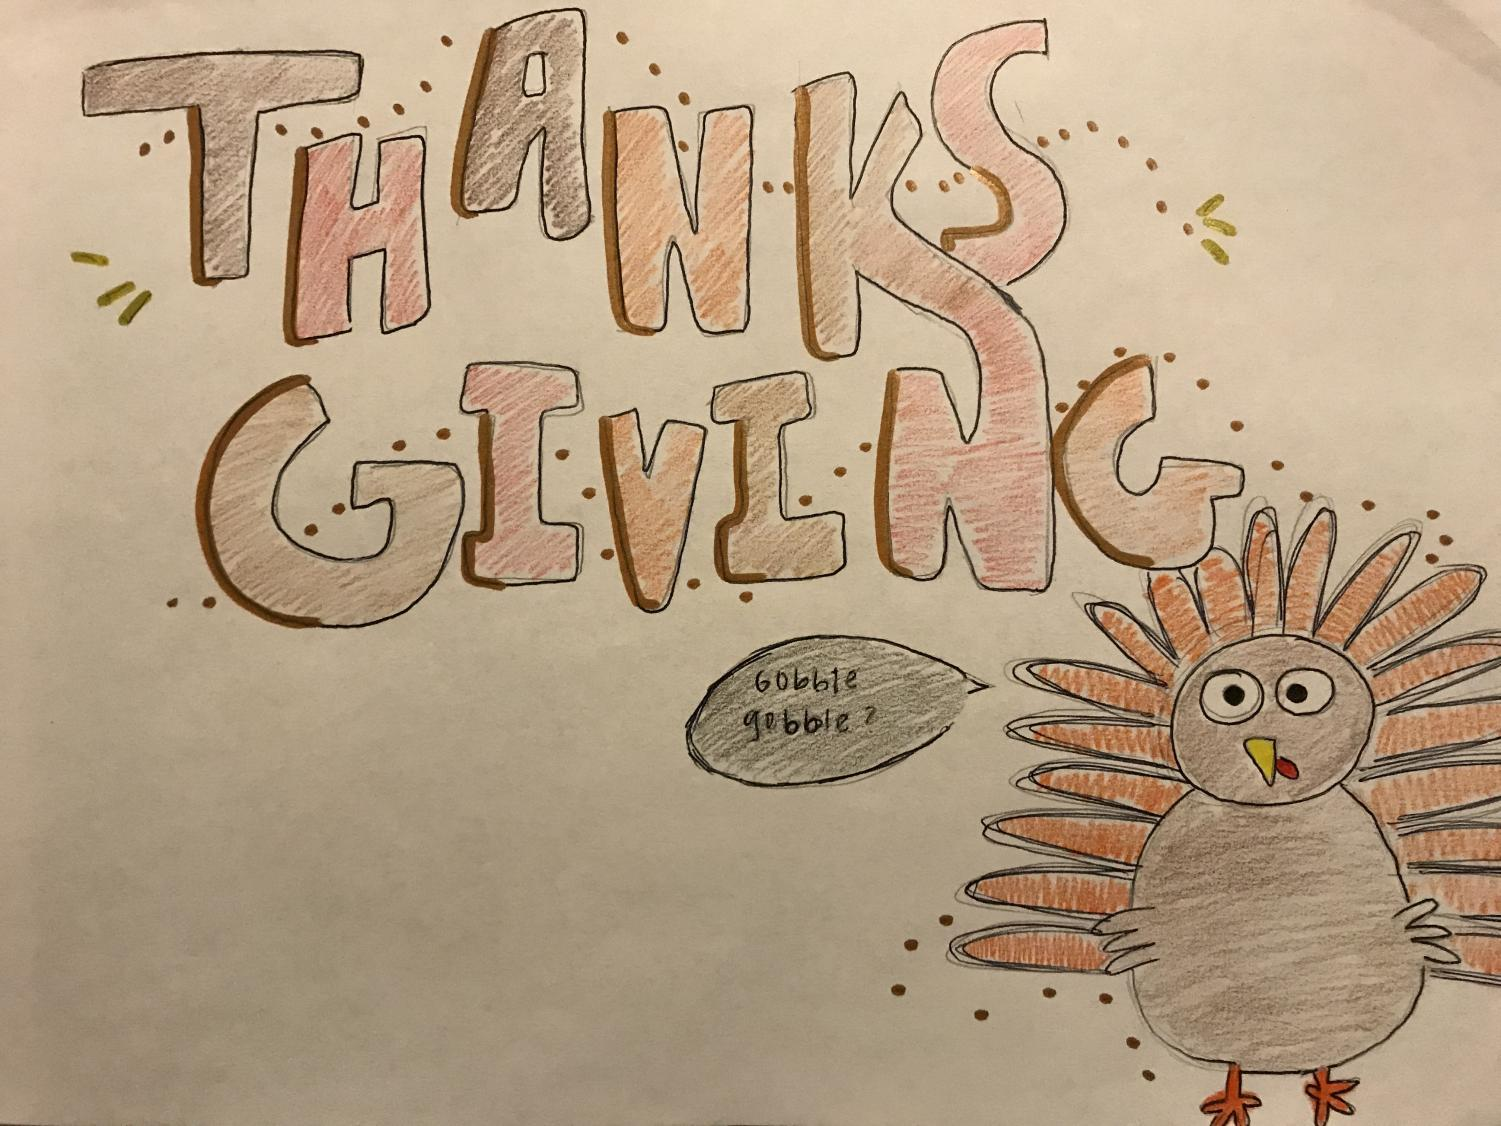 A Thanksgiving drawing with a cartoon of a turkey.